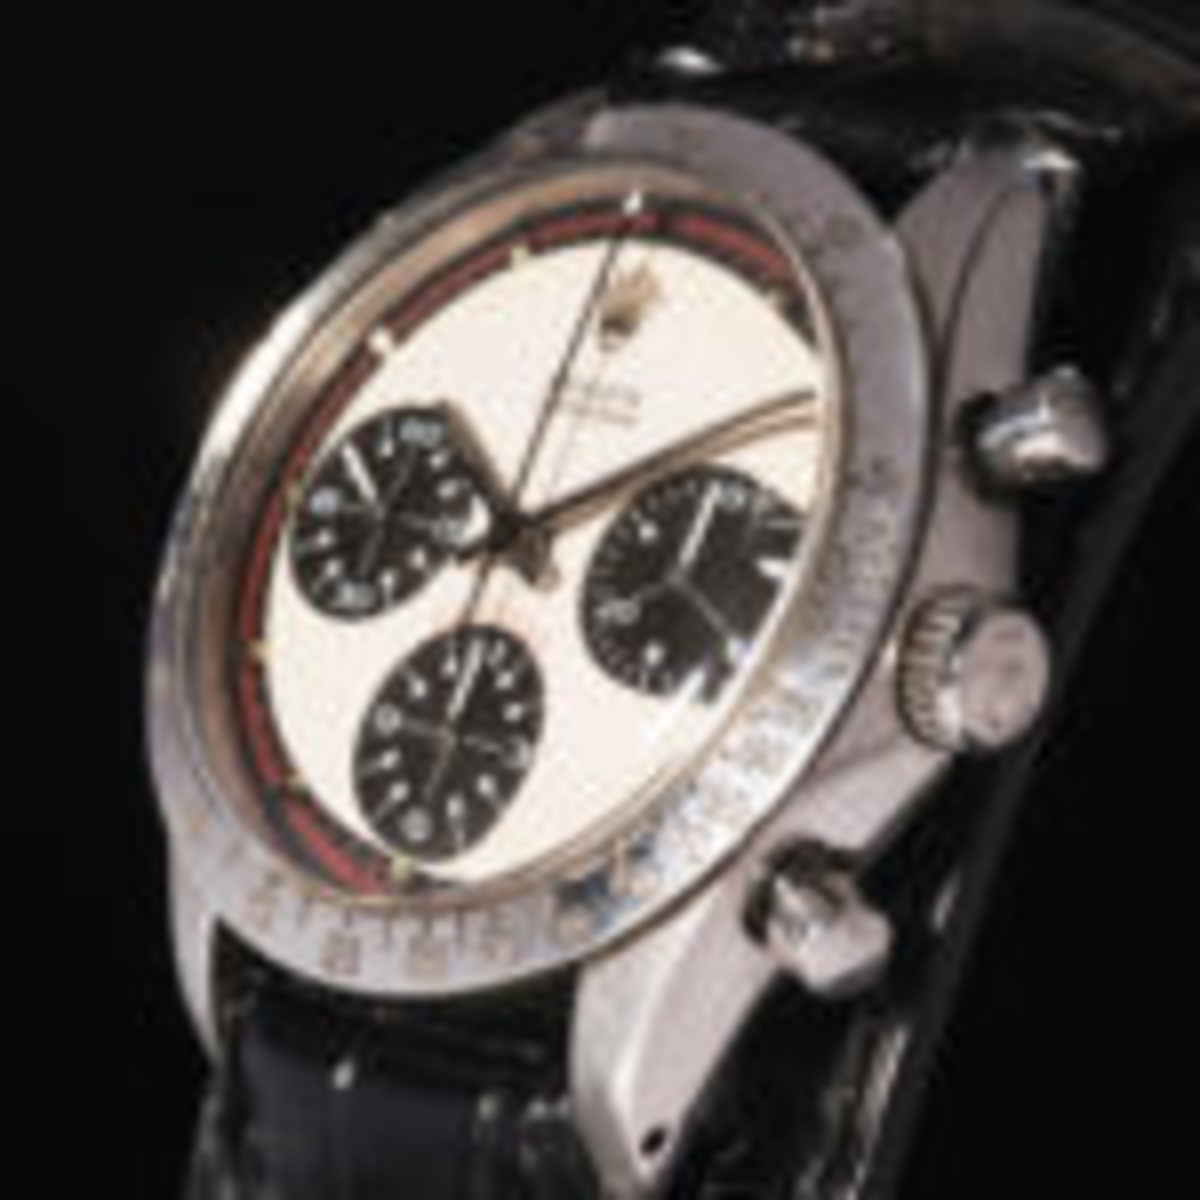 Paul Newman Rolex Daytona, made in the late 1960s, sold at auction in 2017 for a record US $17.75 million. Photo courtesy Phillips